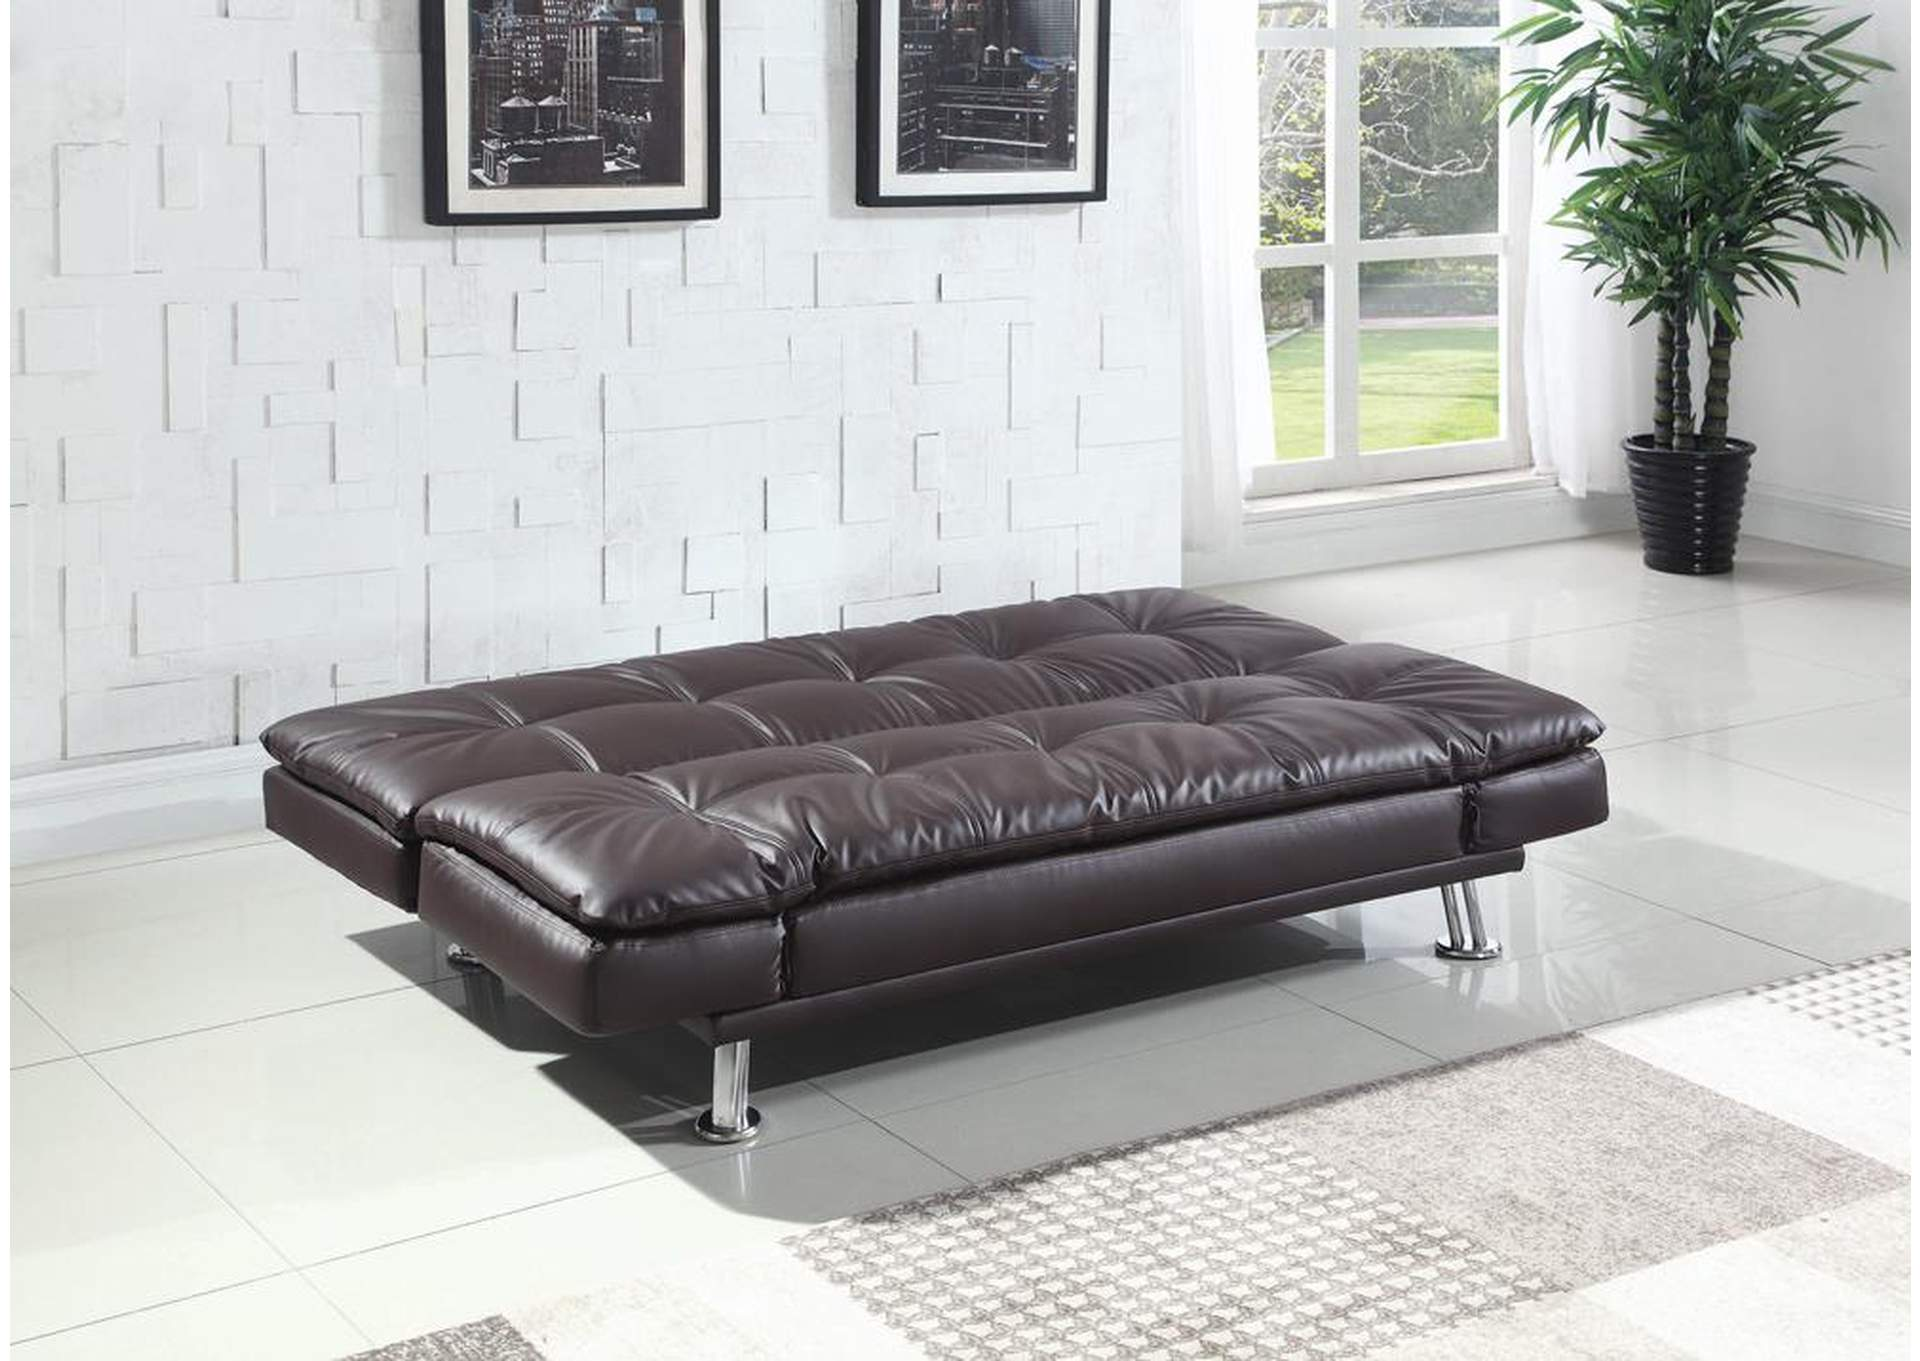 Dilleston Brown Sofa Bed,Coaster Furniture